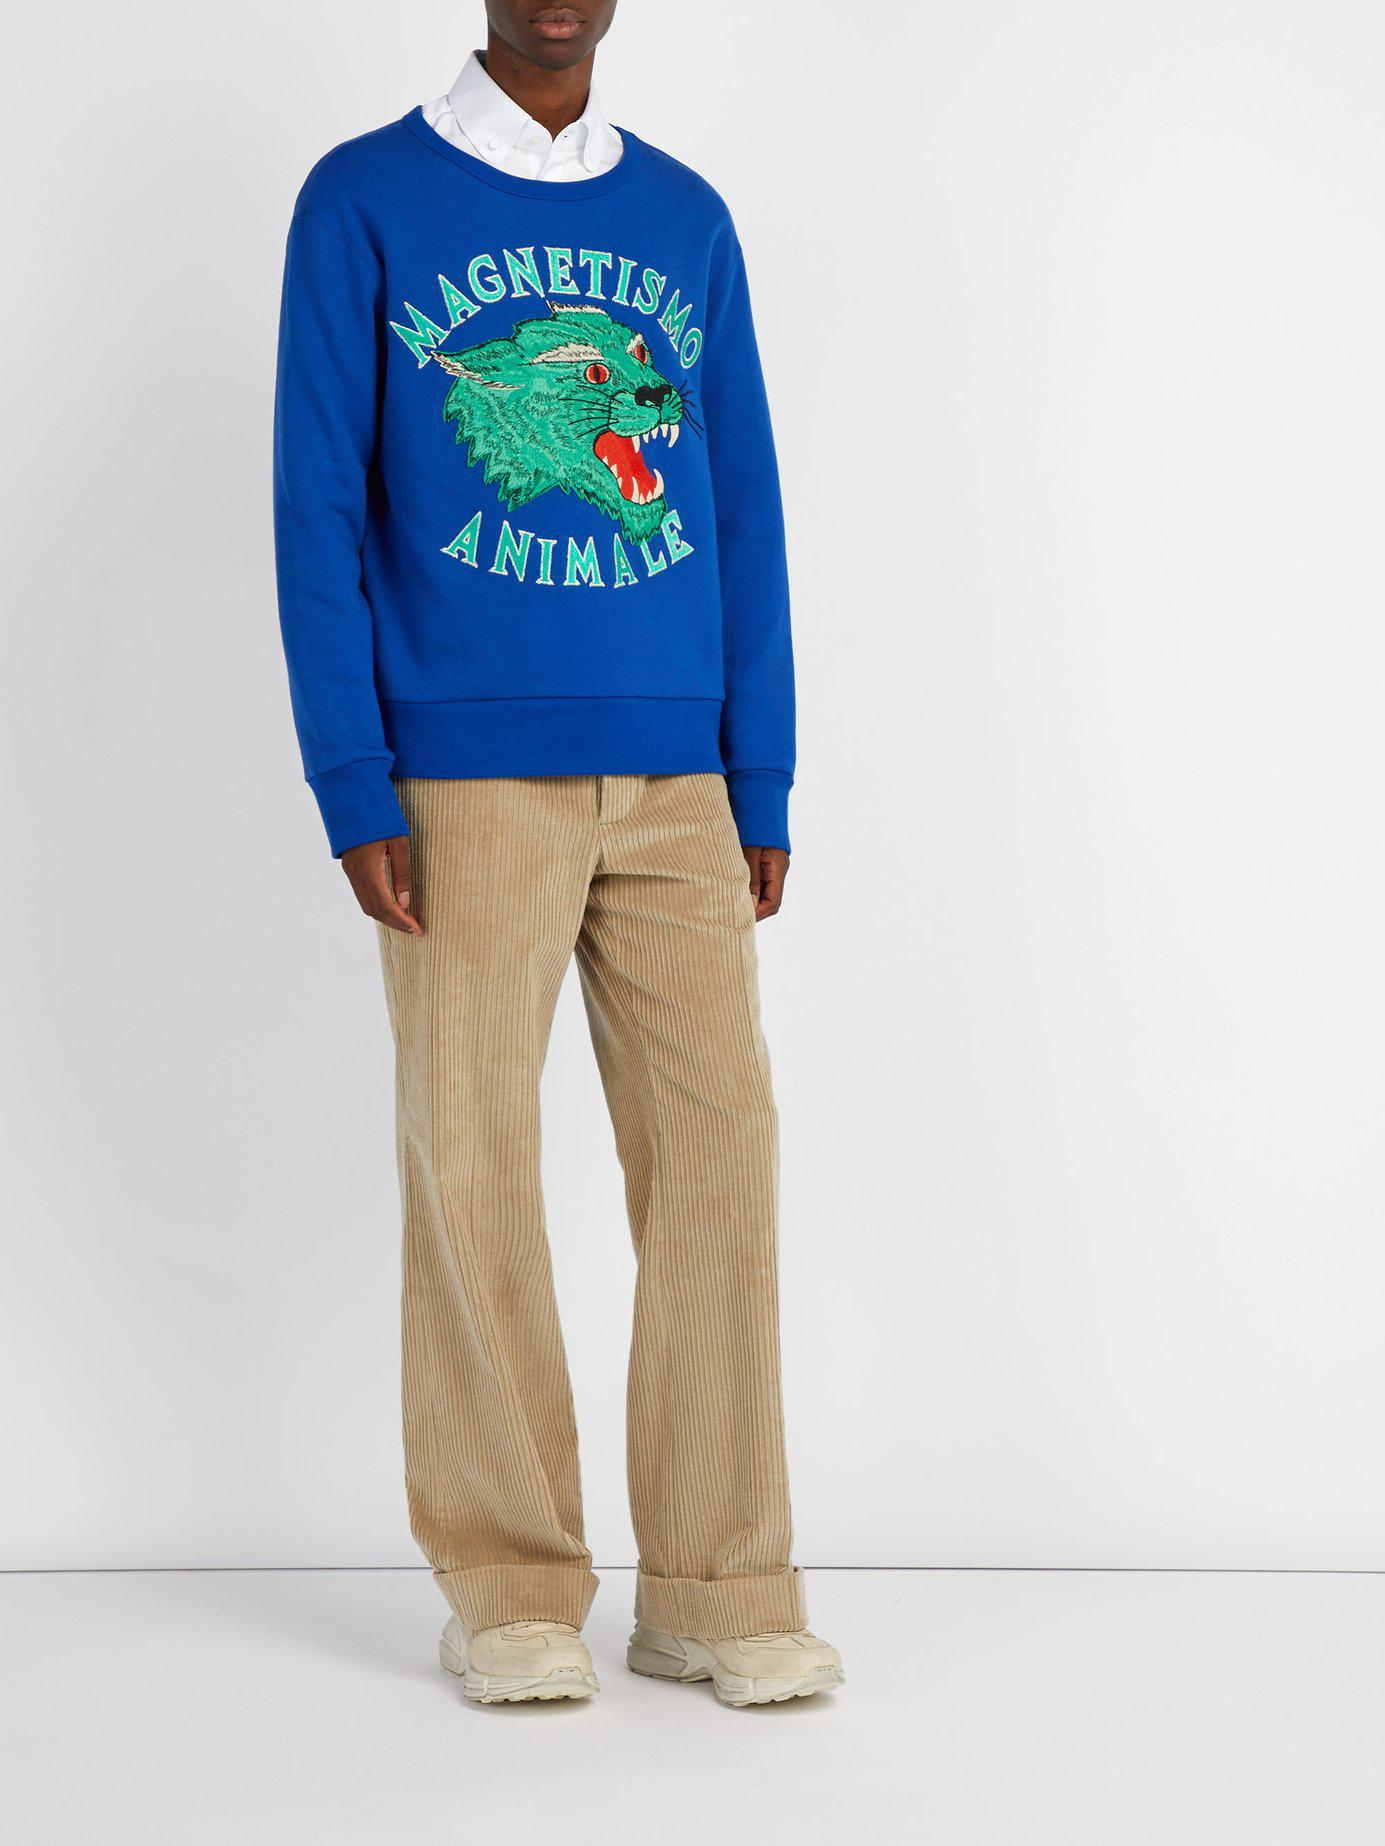 26b184b5d98 Gucci Panther Embroidered Cotton Sweatshirt in Blue for Men - Lyst